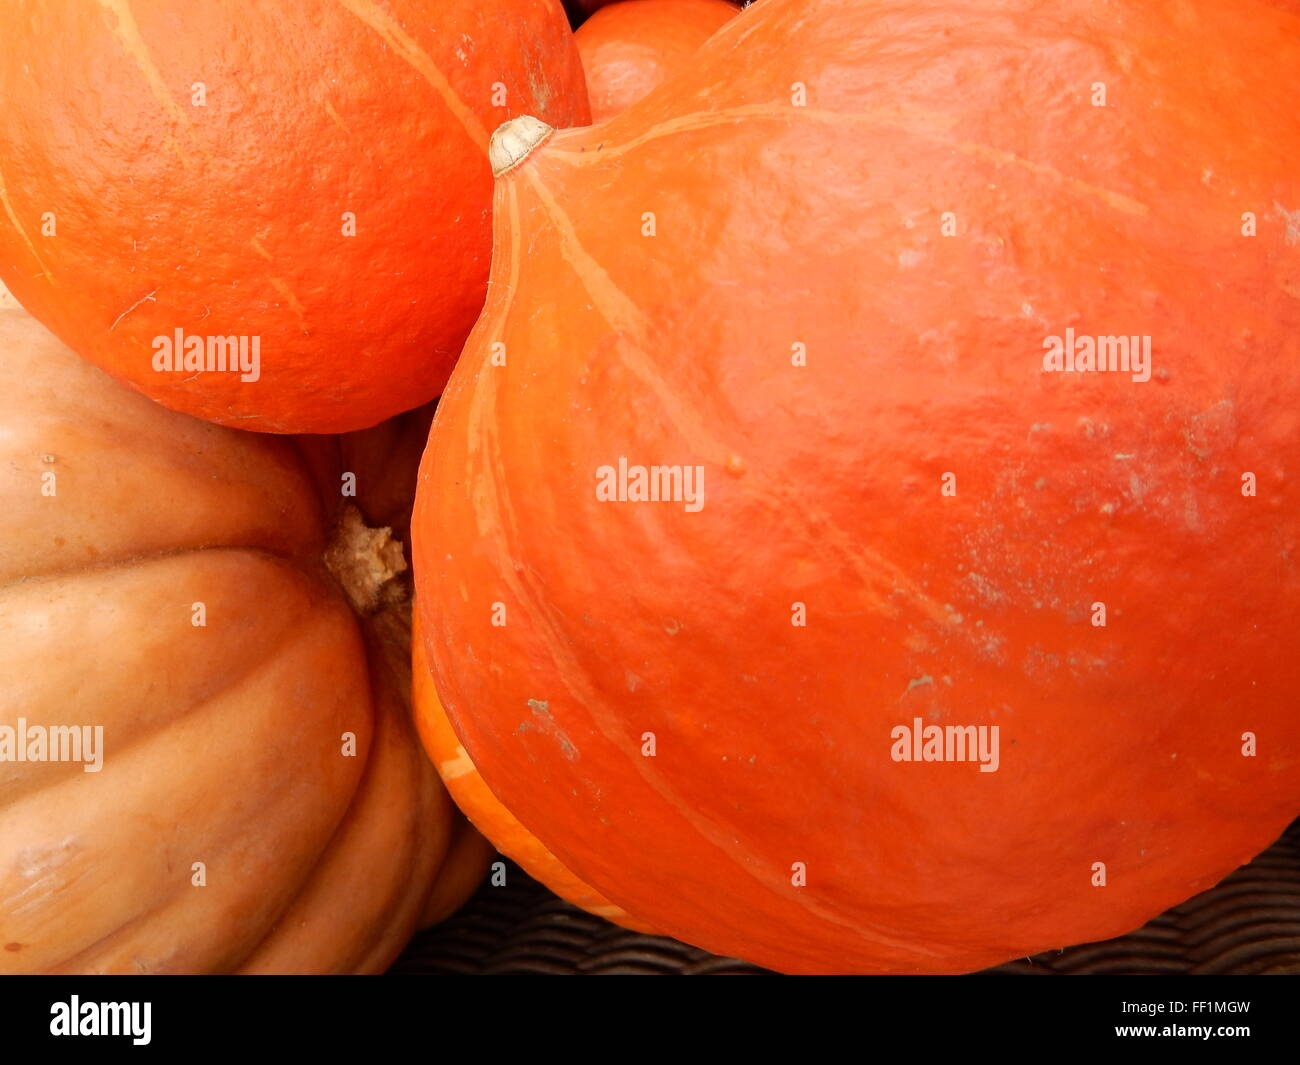 pumpkins on the market place - Stock Image